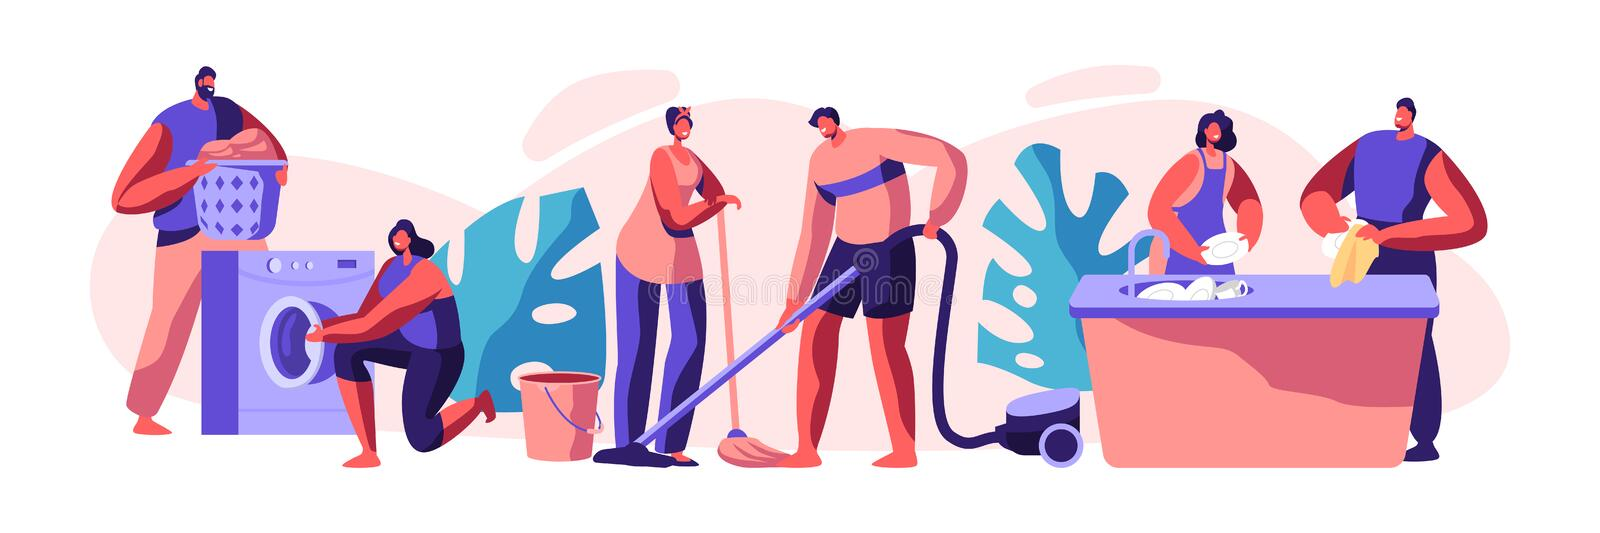 Housekeeping and Routine. Scrubwoman and Man Cleaning Dirty Clothes, Floor. Chores Domestic, Working with Electronic Machine. Technology Cleanliness. Flat stock illustration